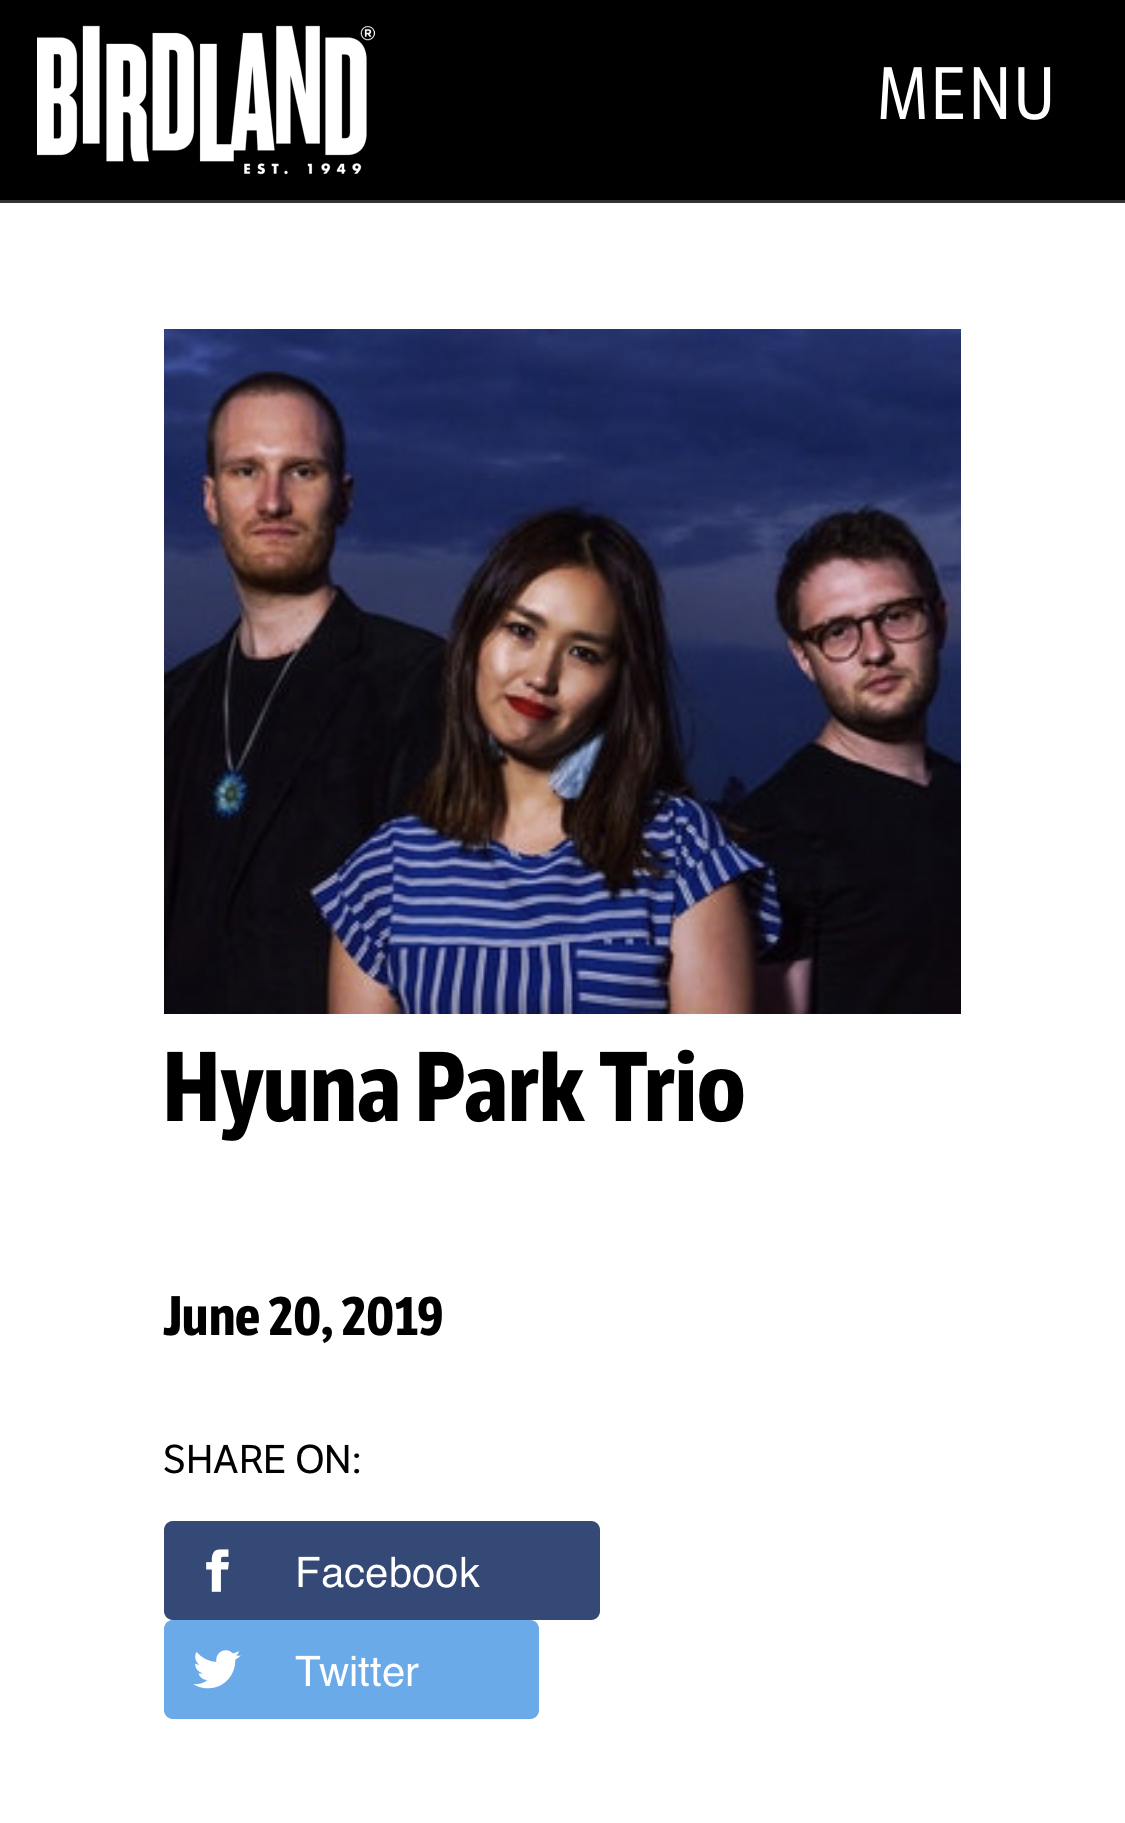 Trio at the Birdland - I have exciting news for the trio! We will play at Birdland, one of New York's most iconic nightclubs on June 20th, 5:30-7pm. We will play most of the songs from our new album Her Morning Waltz and will add a few more from the American song book.Please join us, invite your friends, share the event! Playing at Birdland is a special opportunity for the trio and Myles, Peter and I appreciate your support more than ever!